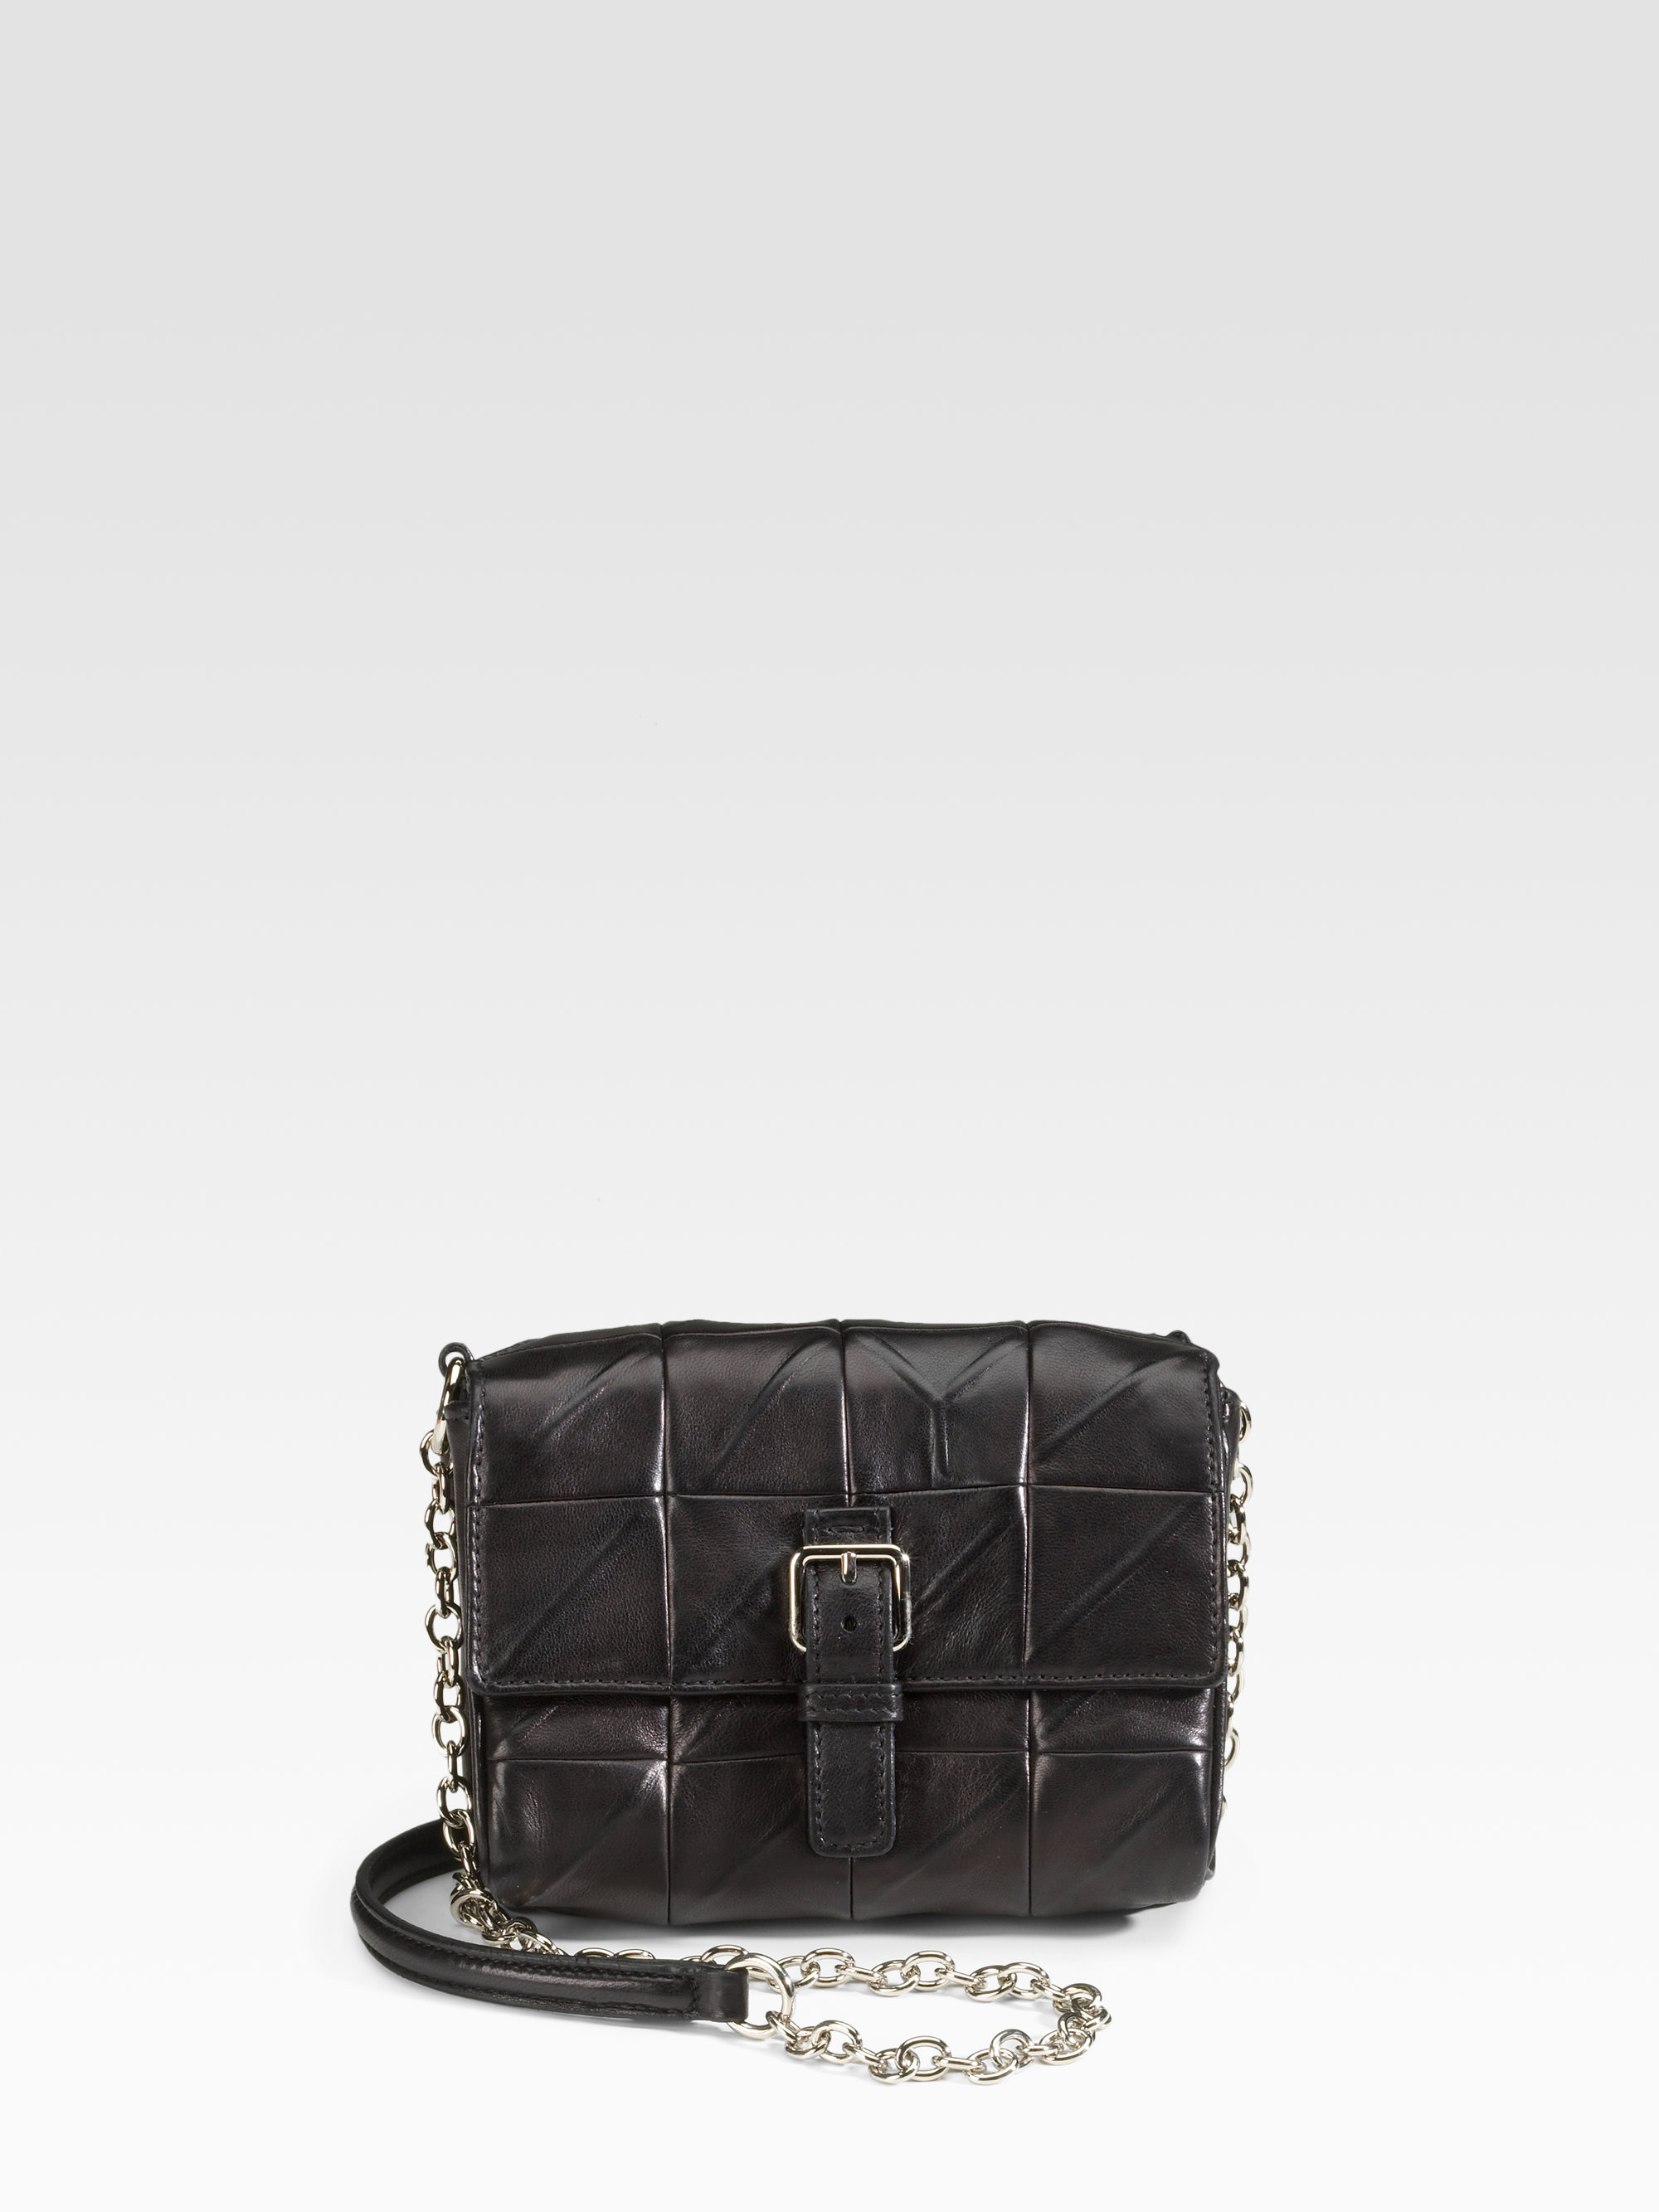 Saint laurent Ysl Mini Leather Flap Bag in Black | Lyst